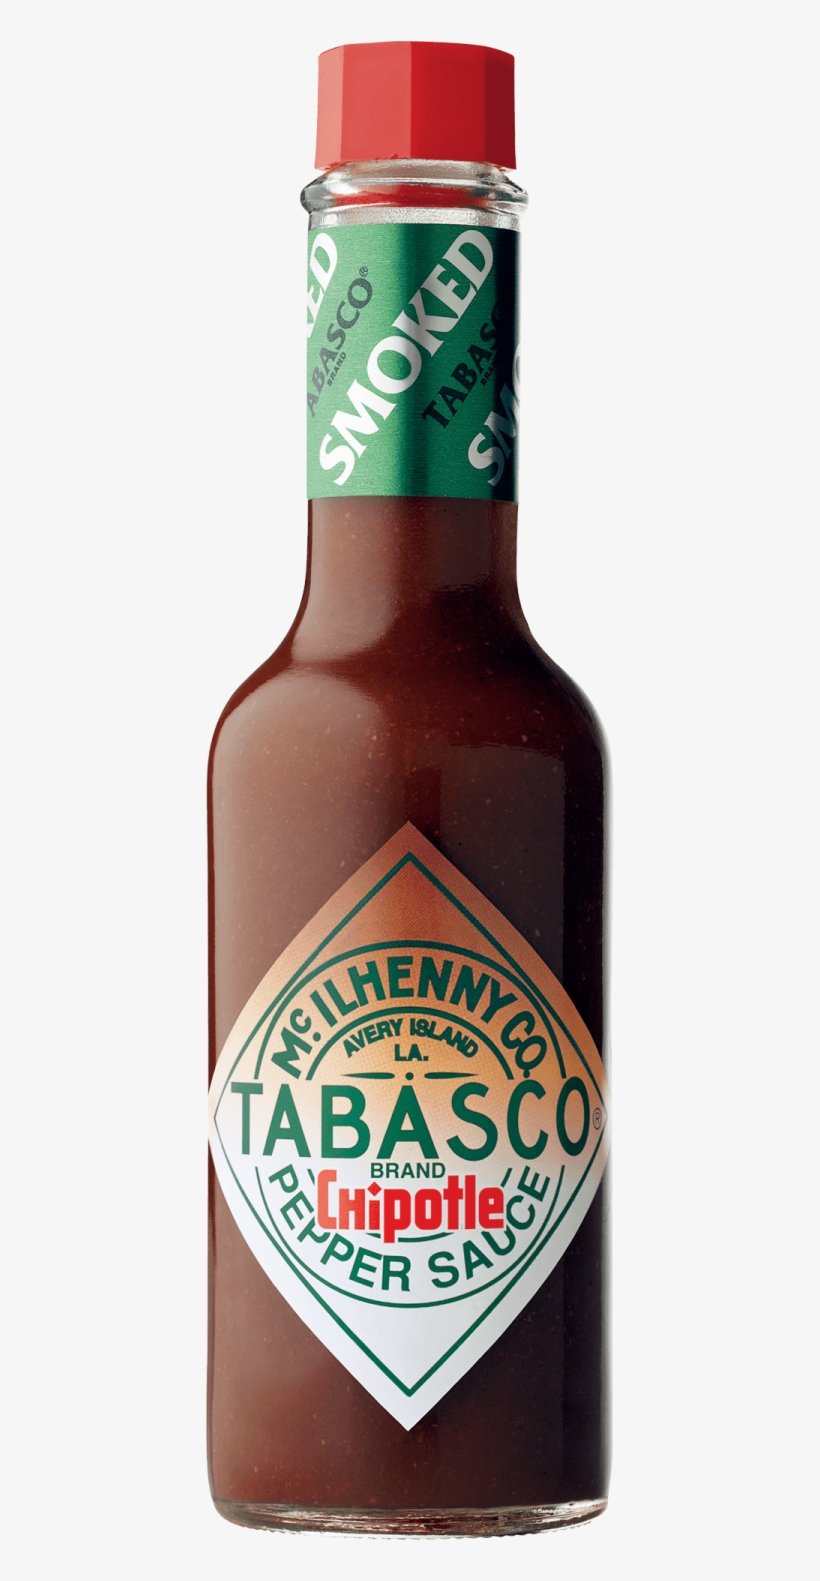 Spice-rub Baby Back Ribs With Chipotle Bbq Sauce Plus - Tabasco Sauce, transparent png #9674712